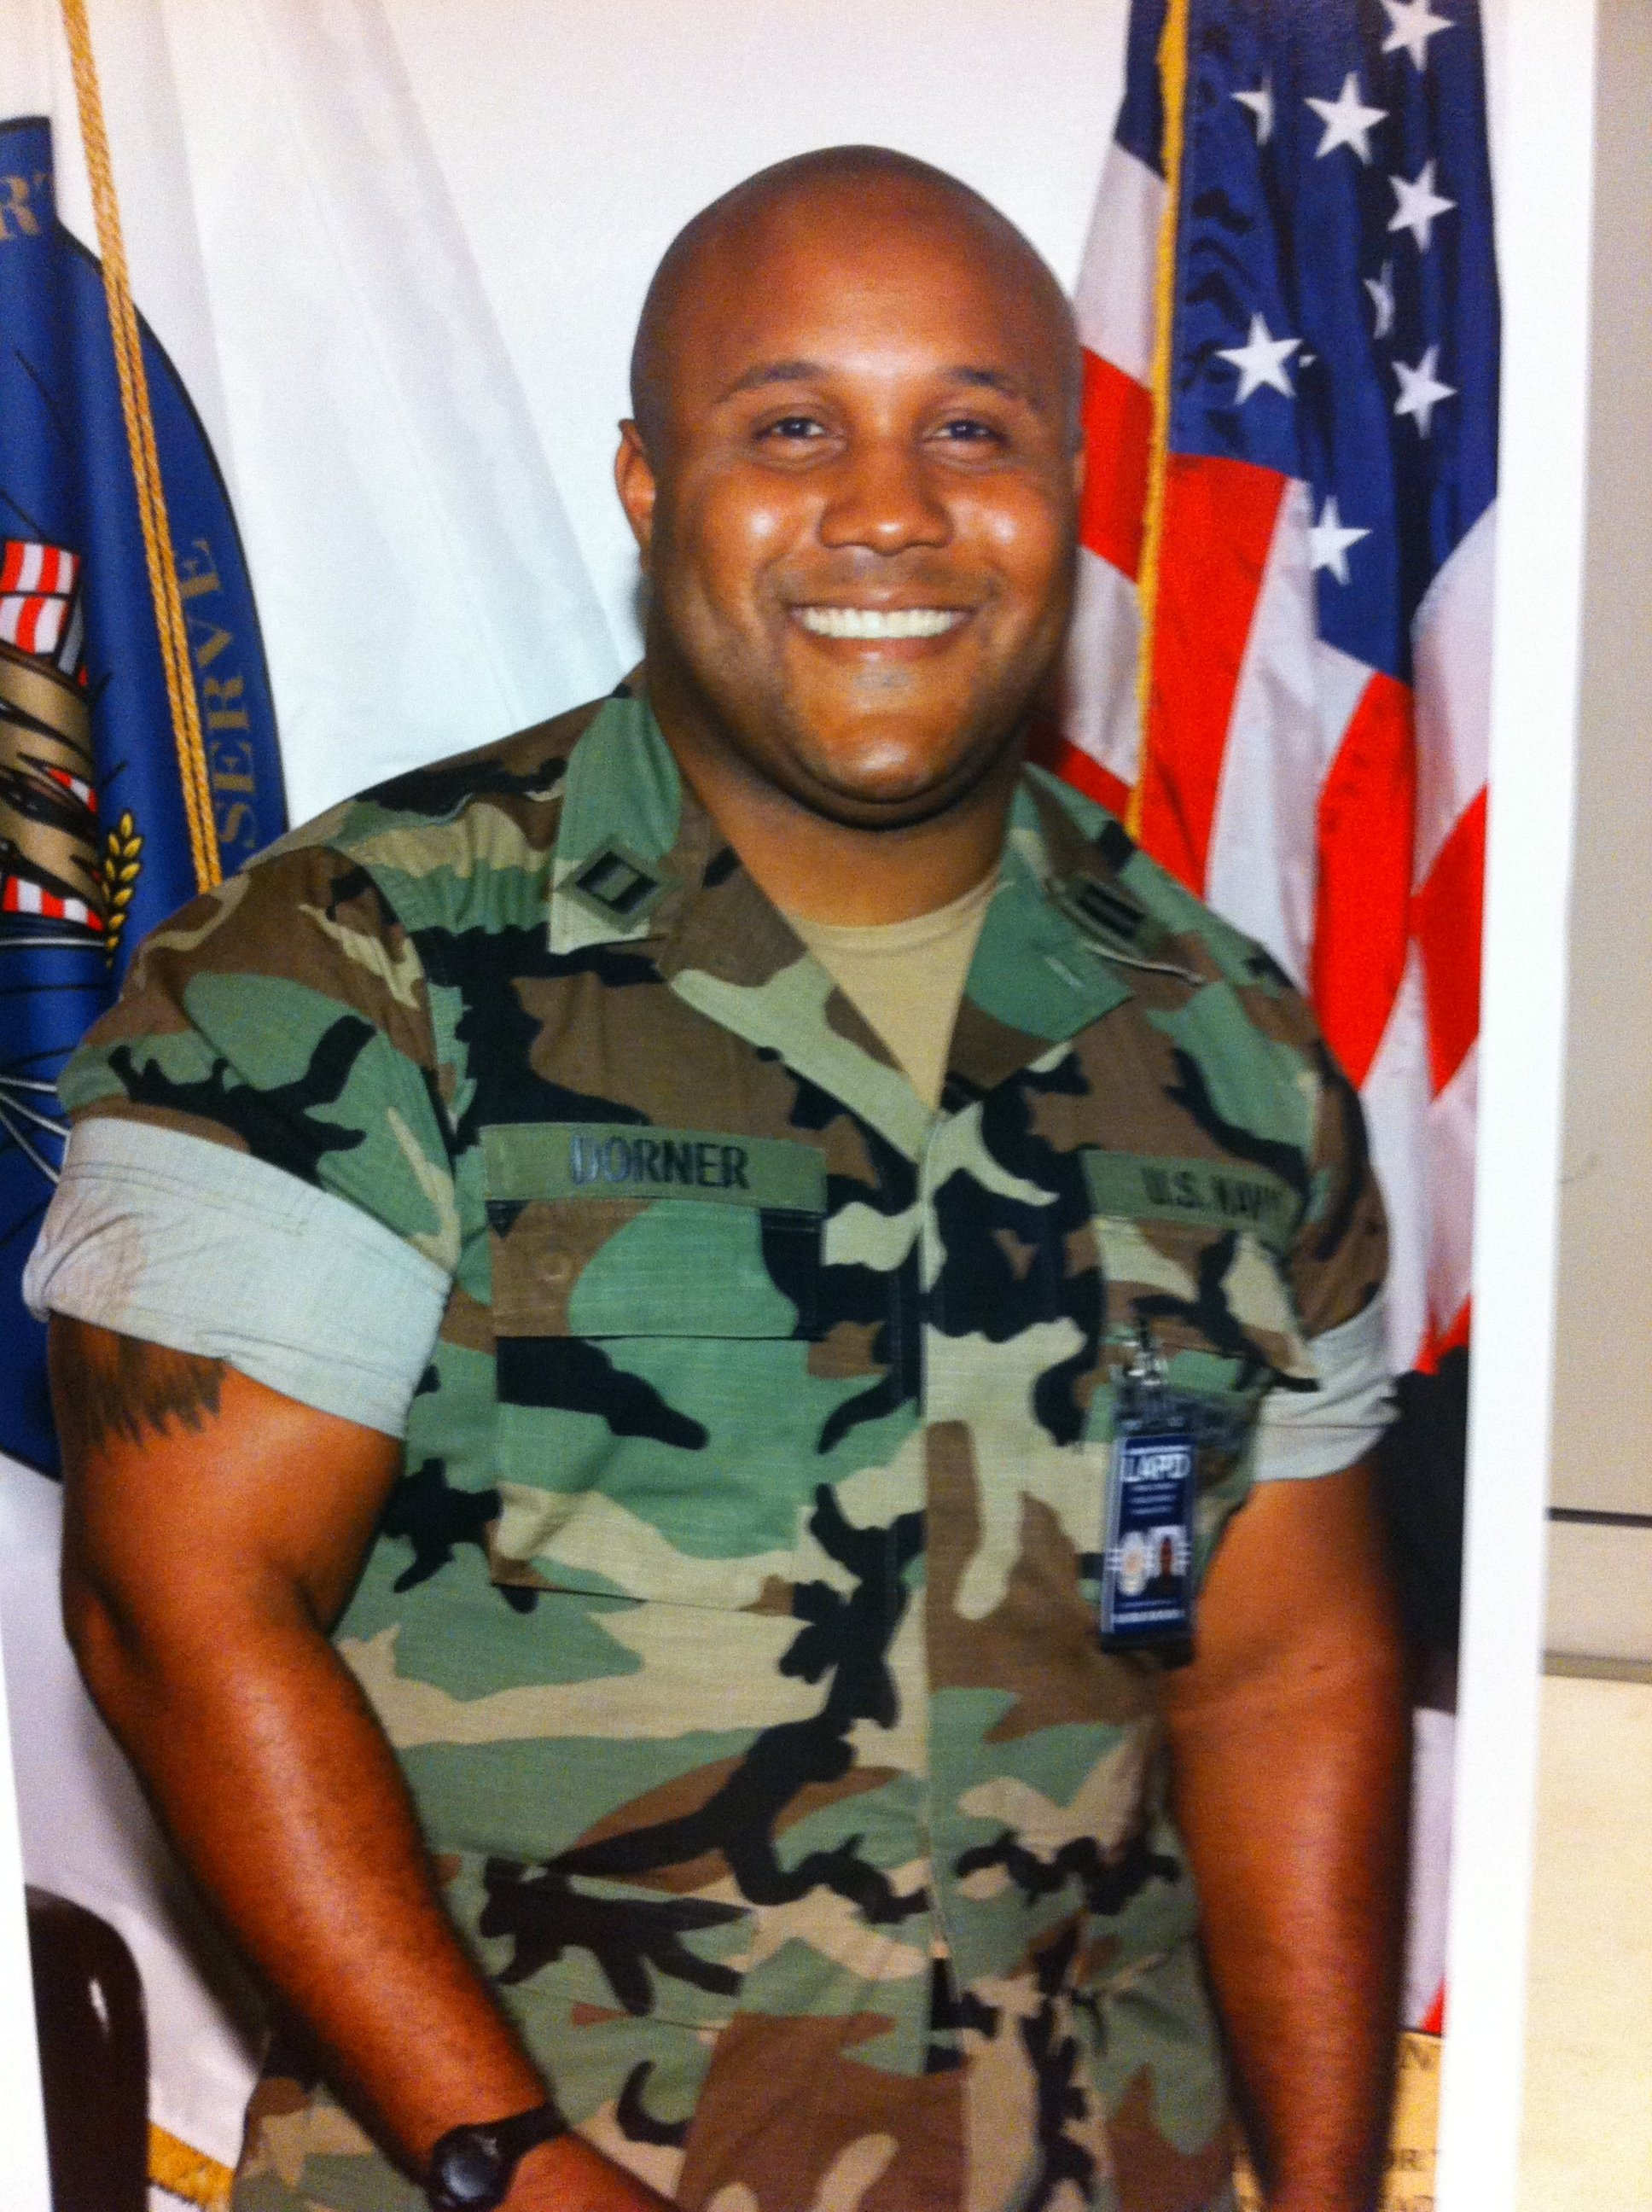 A former Los Angeles cop who had allegedly warned he would target law enforcement in retribution for being fired is now suspected of shooting three officers early Thursday, killing one, authorities said. The shootings -- which come a day after Irvine, California, police named Christopher Jordan Dorner (pictured) as the suspect in a double slaying there Sunday -- sparked a huge manhunt in Southern California.